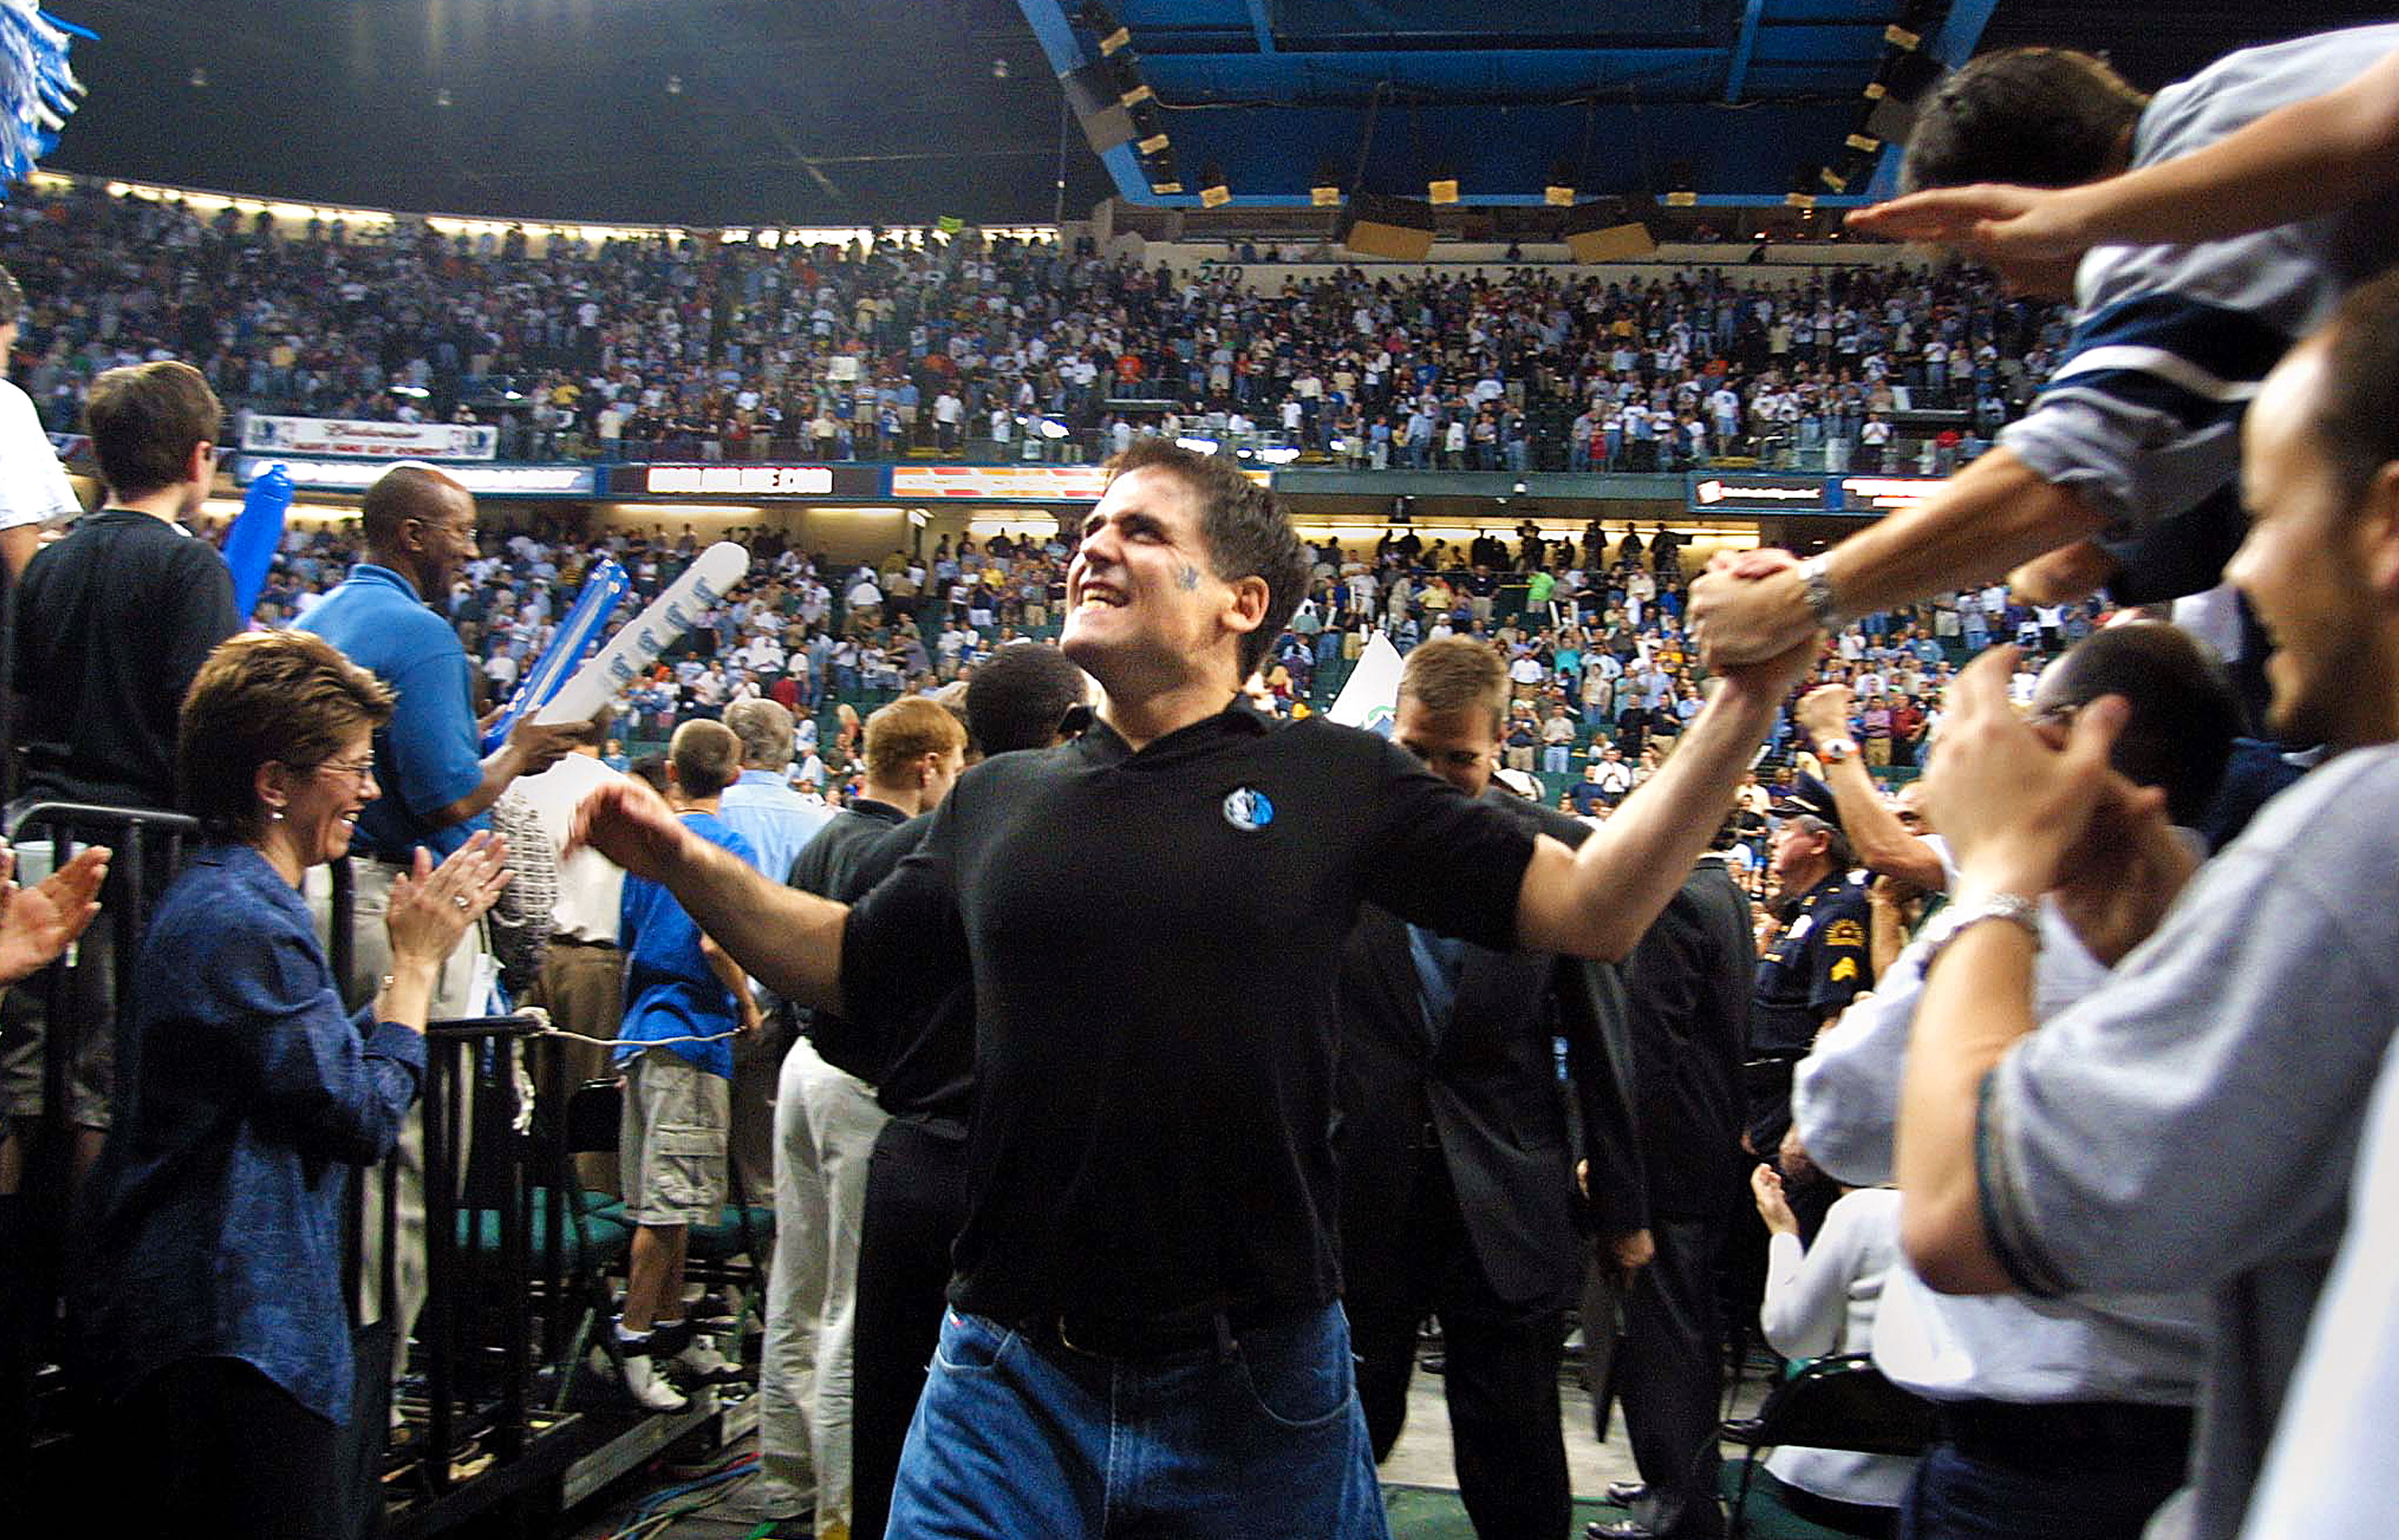 Cuban celebrates with Dallas fans in 2001 following a Mavericks home win over the Utah Jazz.